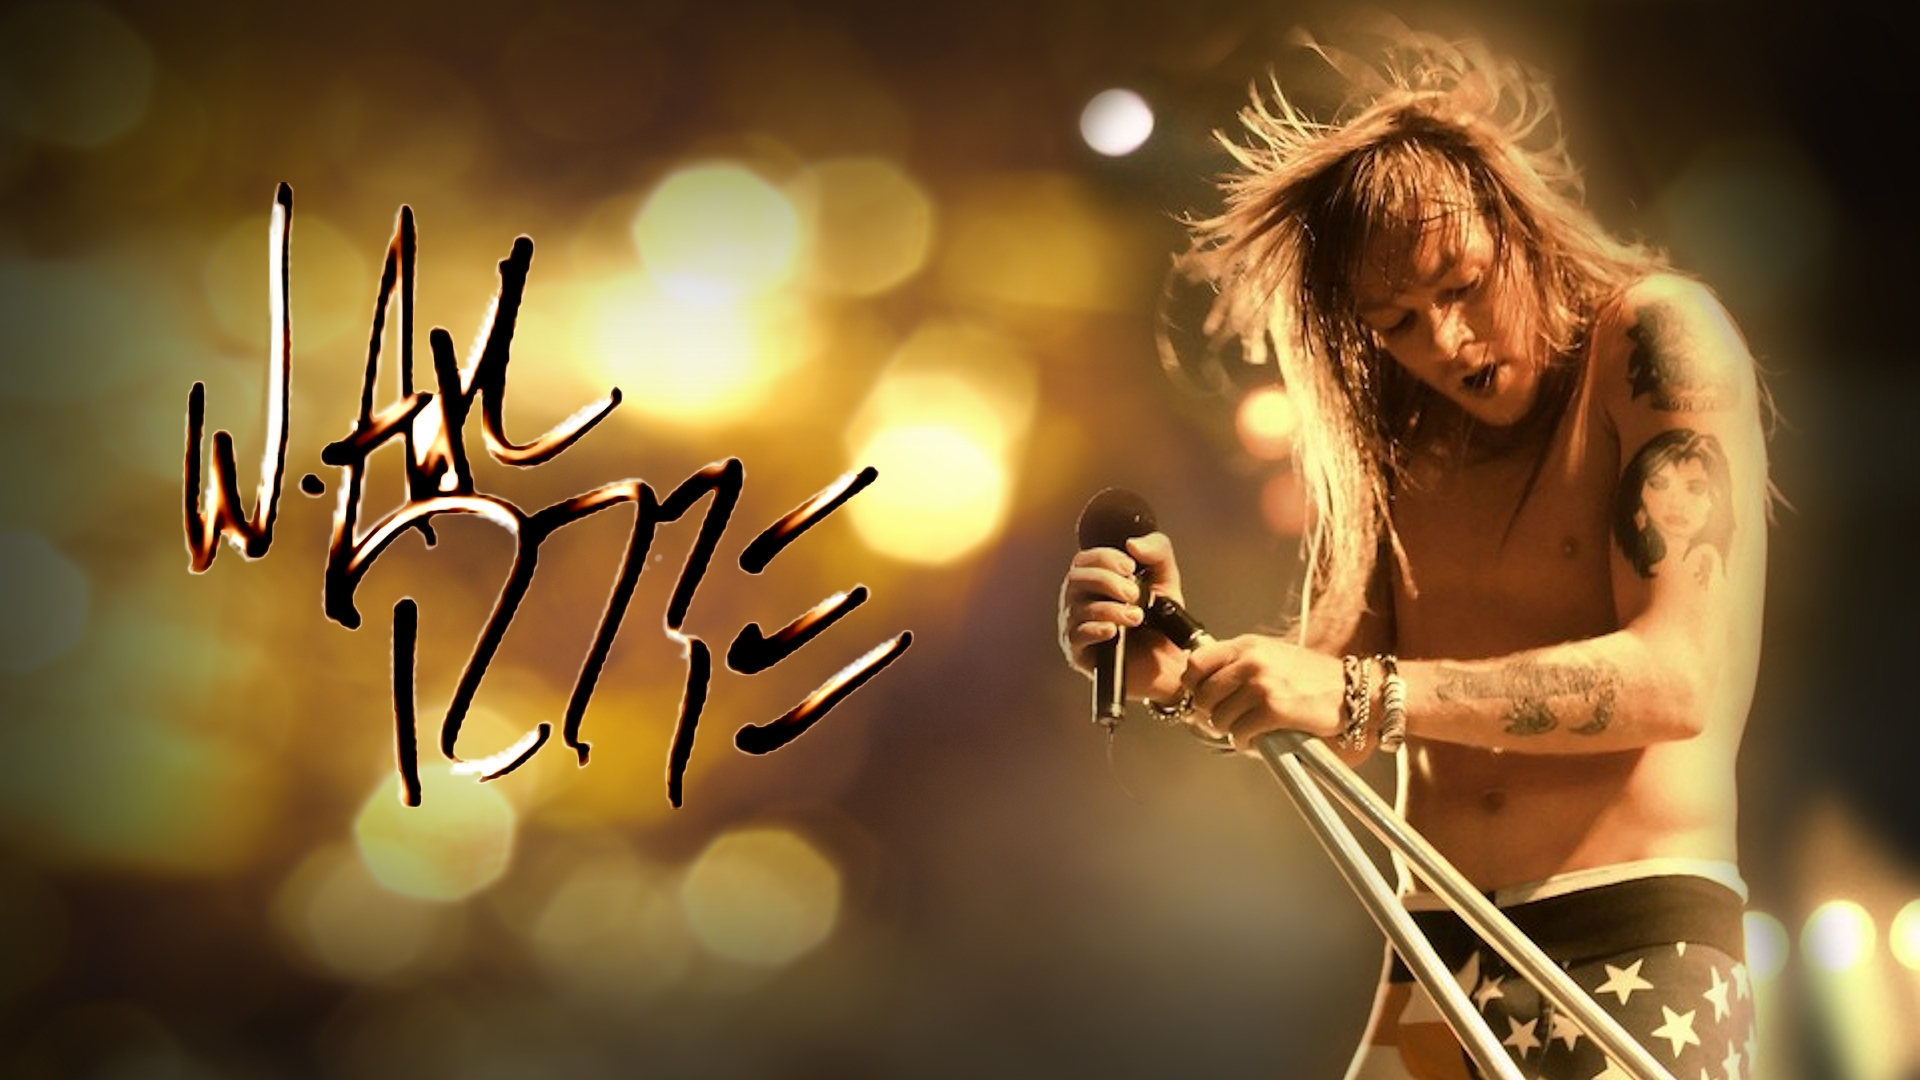 axl rose wallpaper - photo #14